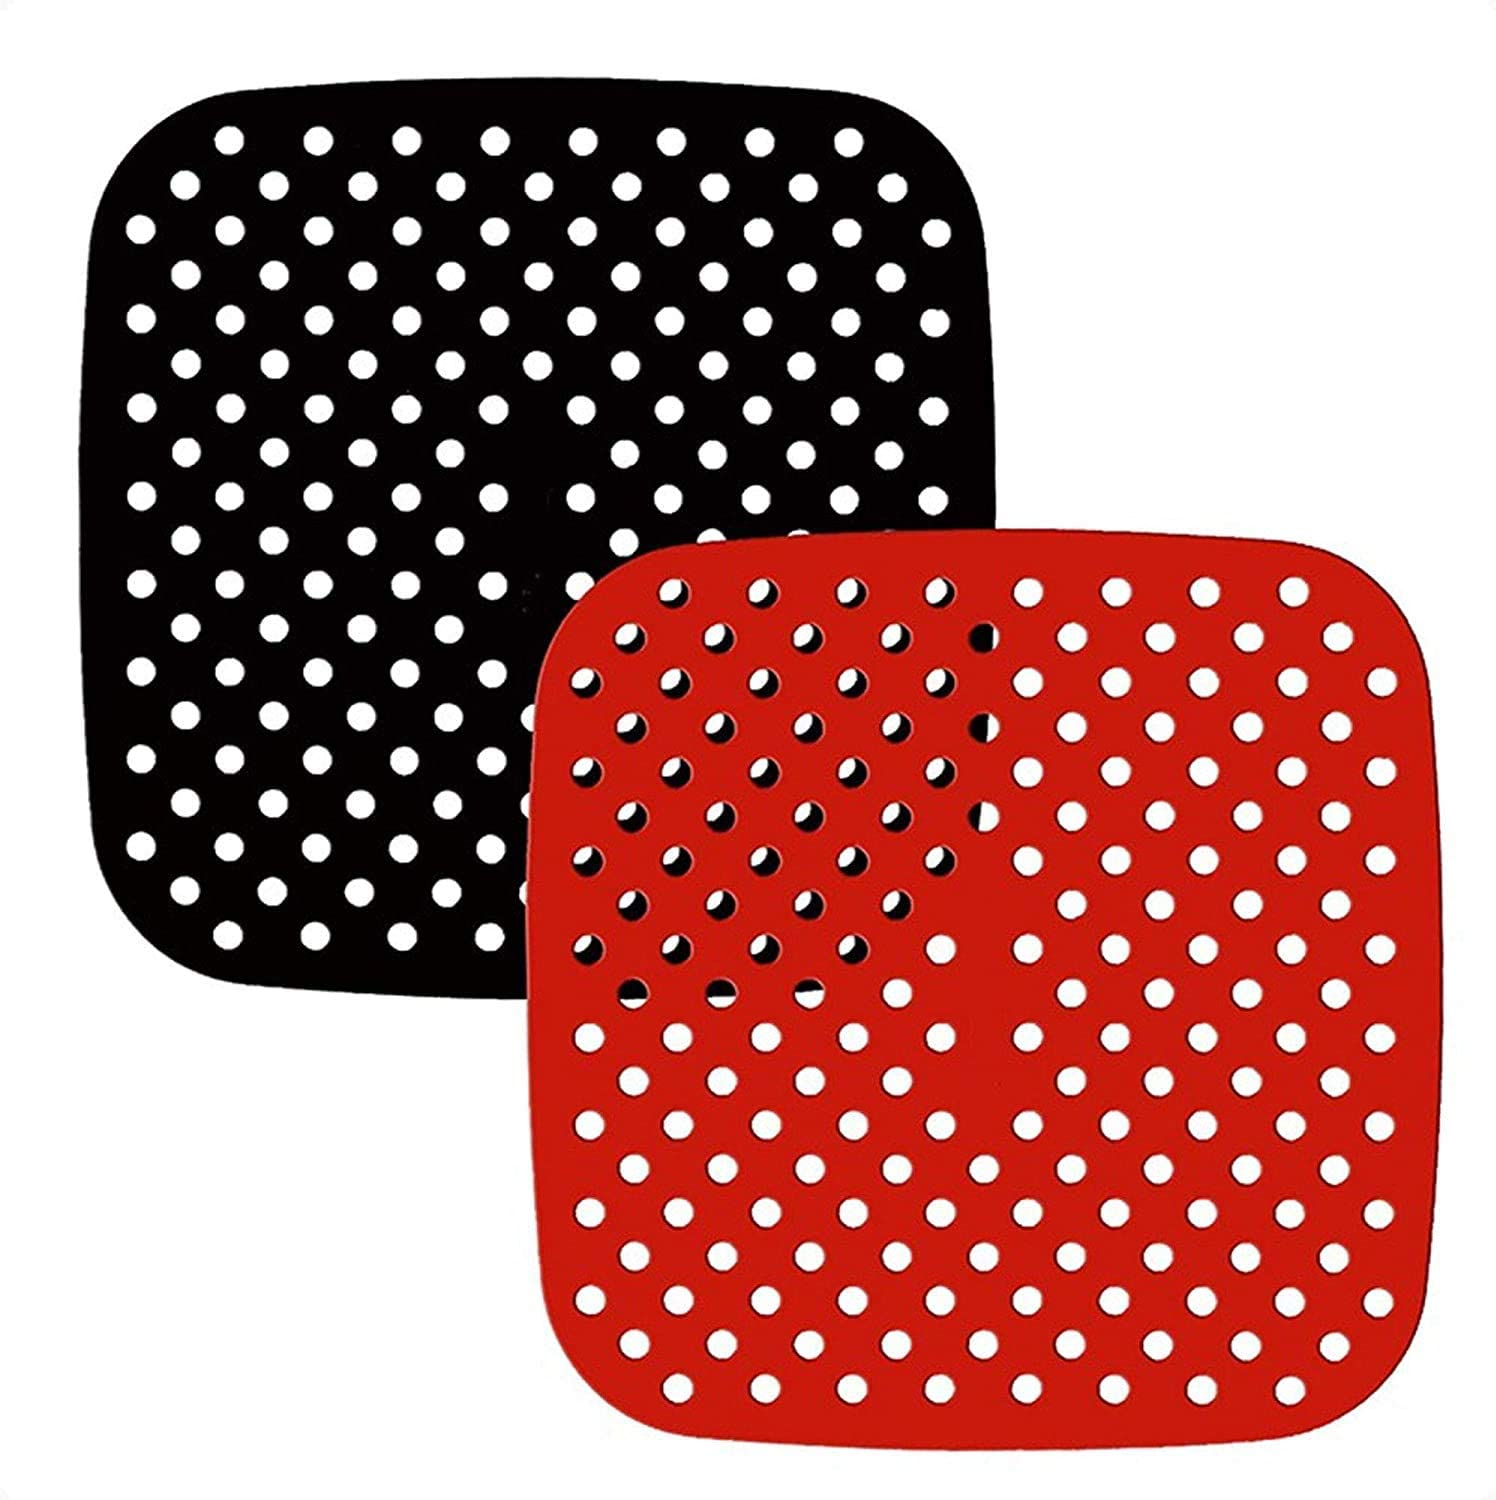 Reusable air fryer liner silicone, 8.5 inch square non-stick basket mat accessories, | air fryer accessories for 5.8 quarts and larger air fryer, substitute for parchment paper-(2 packs)